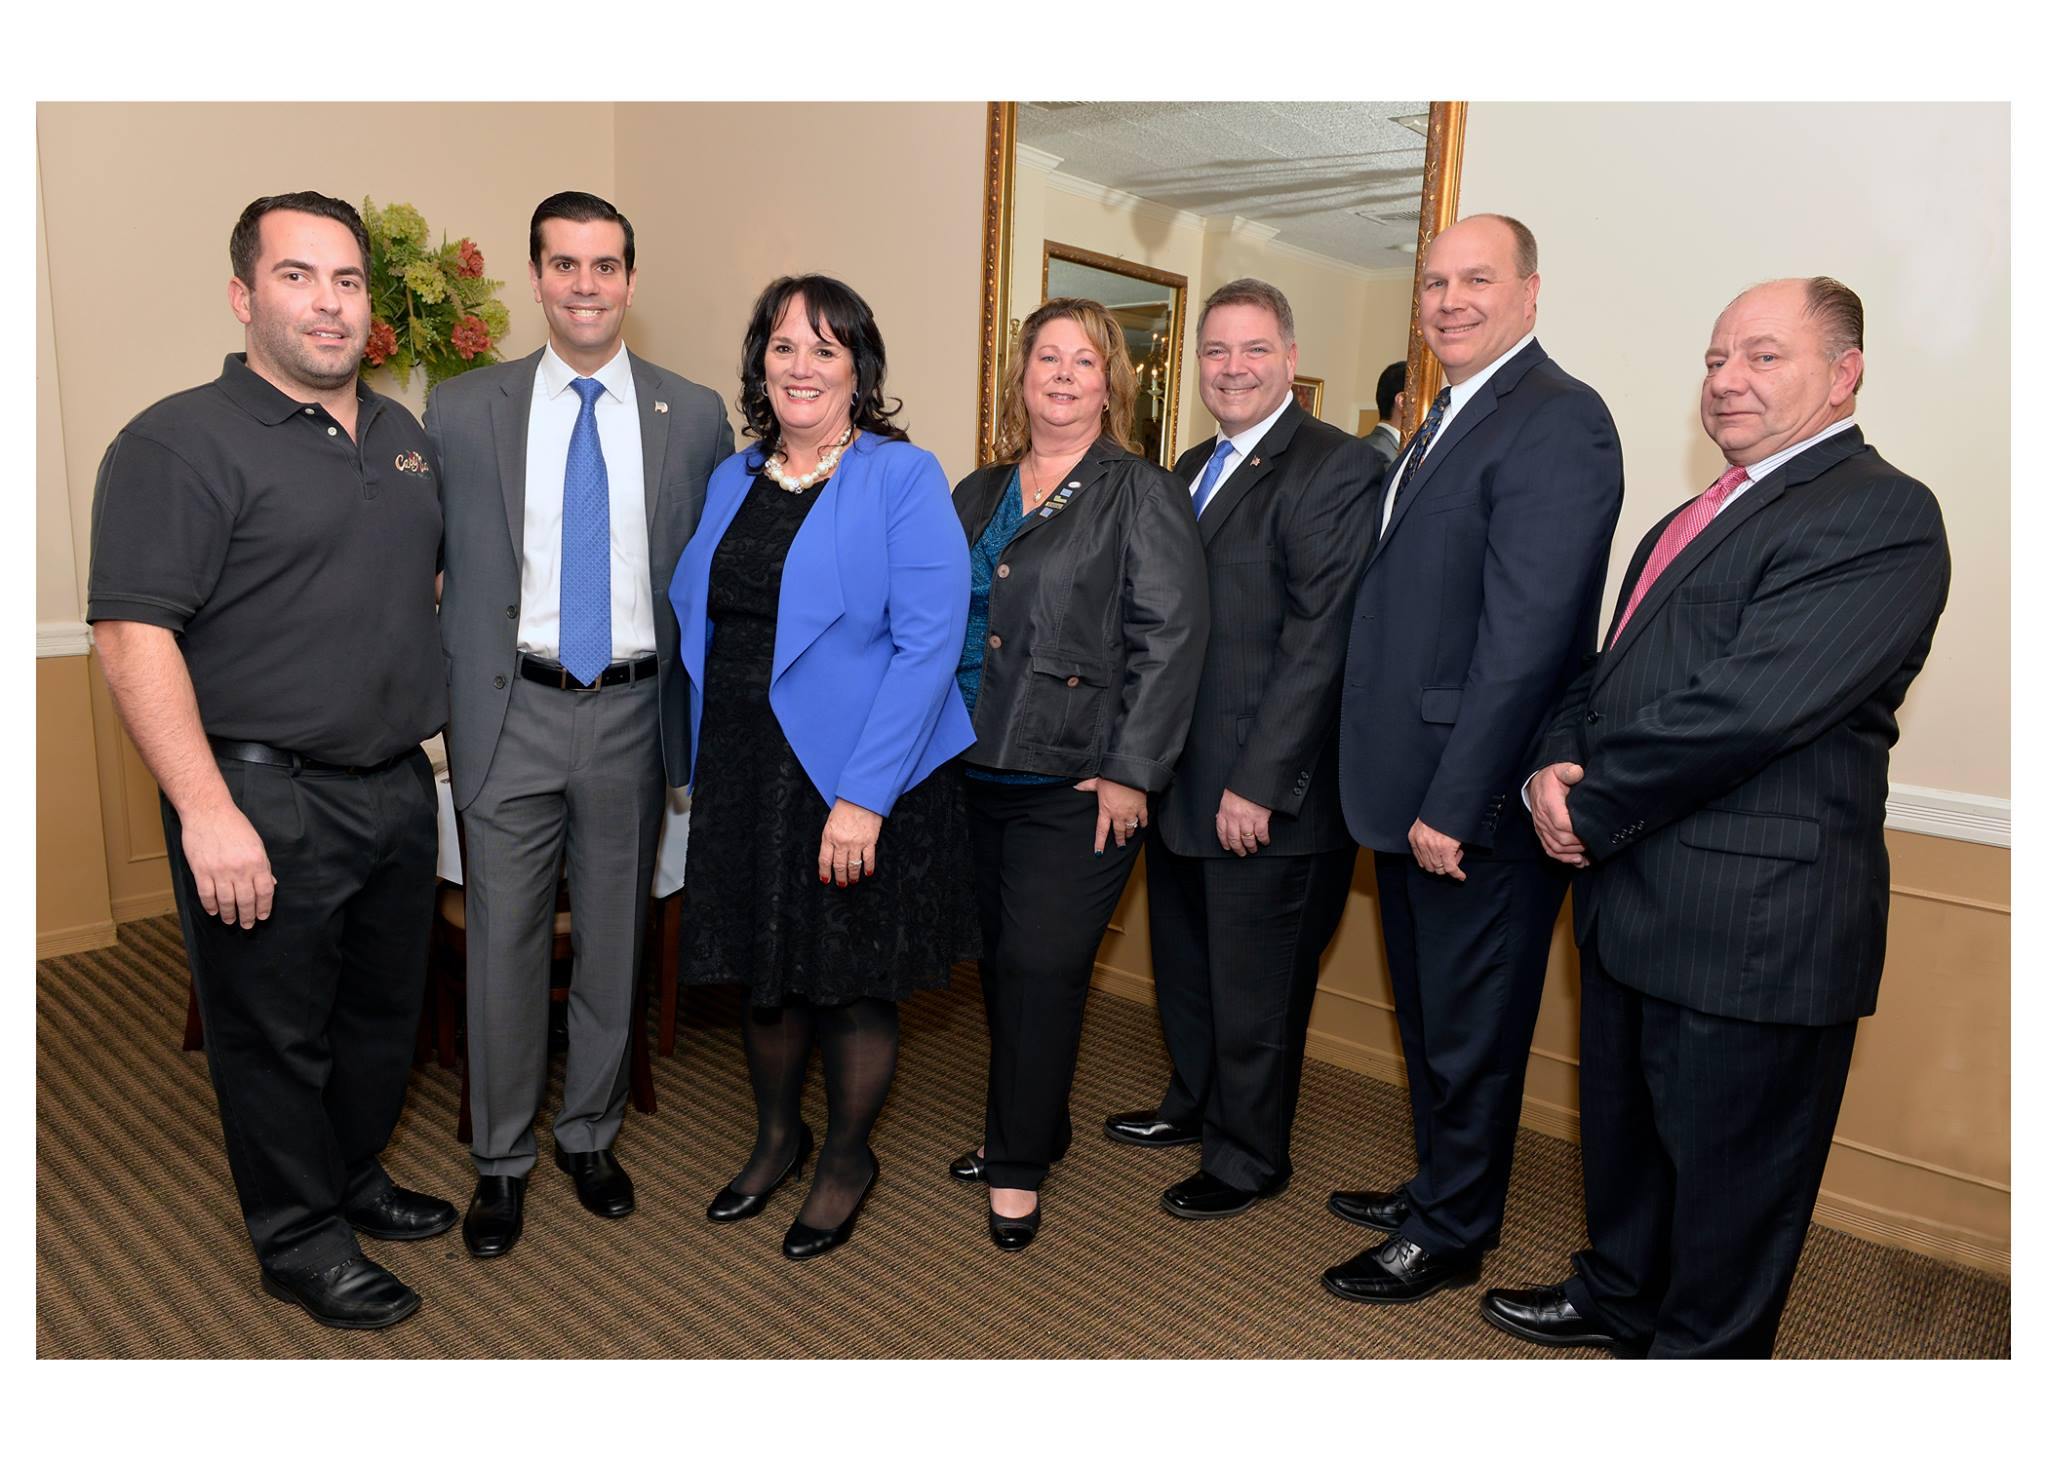 2016-Seaford-Chamber-of-Commerce-Officers-